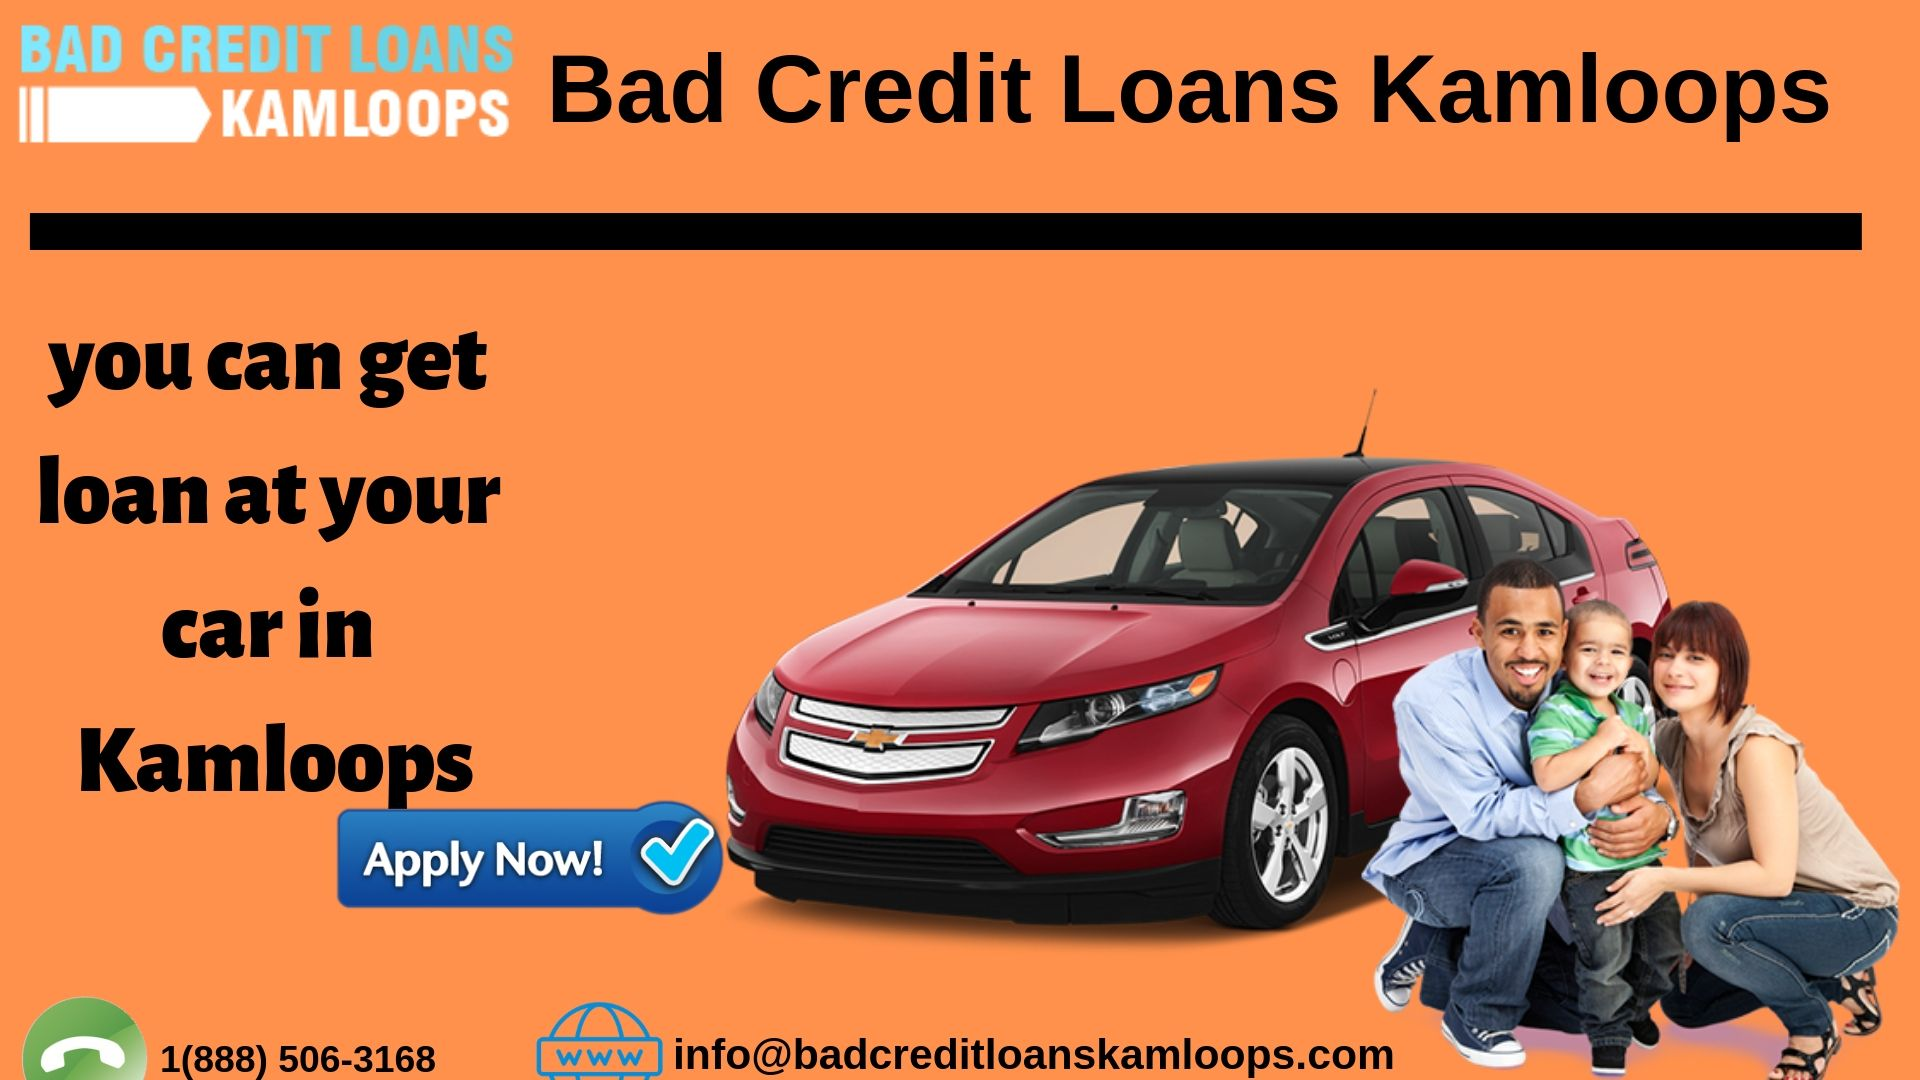 Get car title loans same day and with easy process in